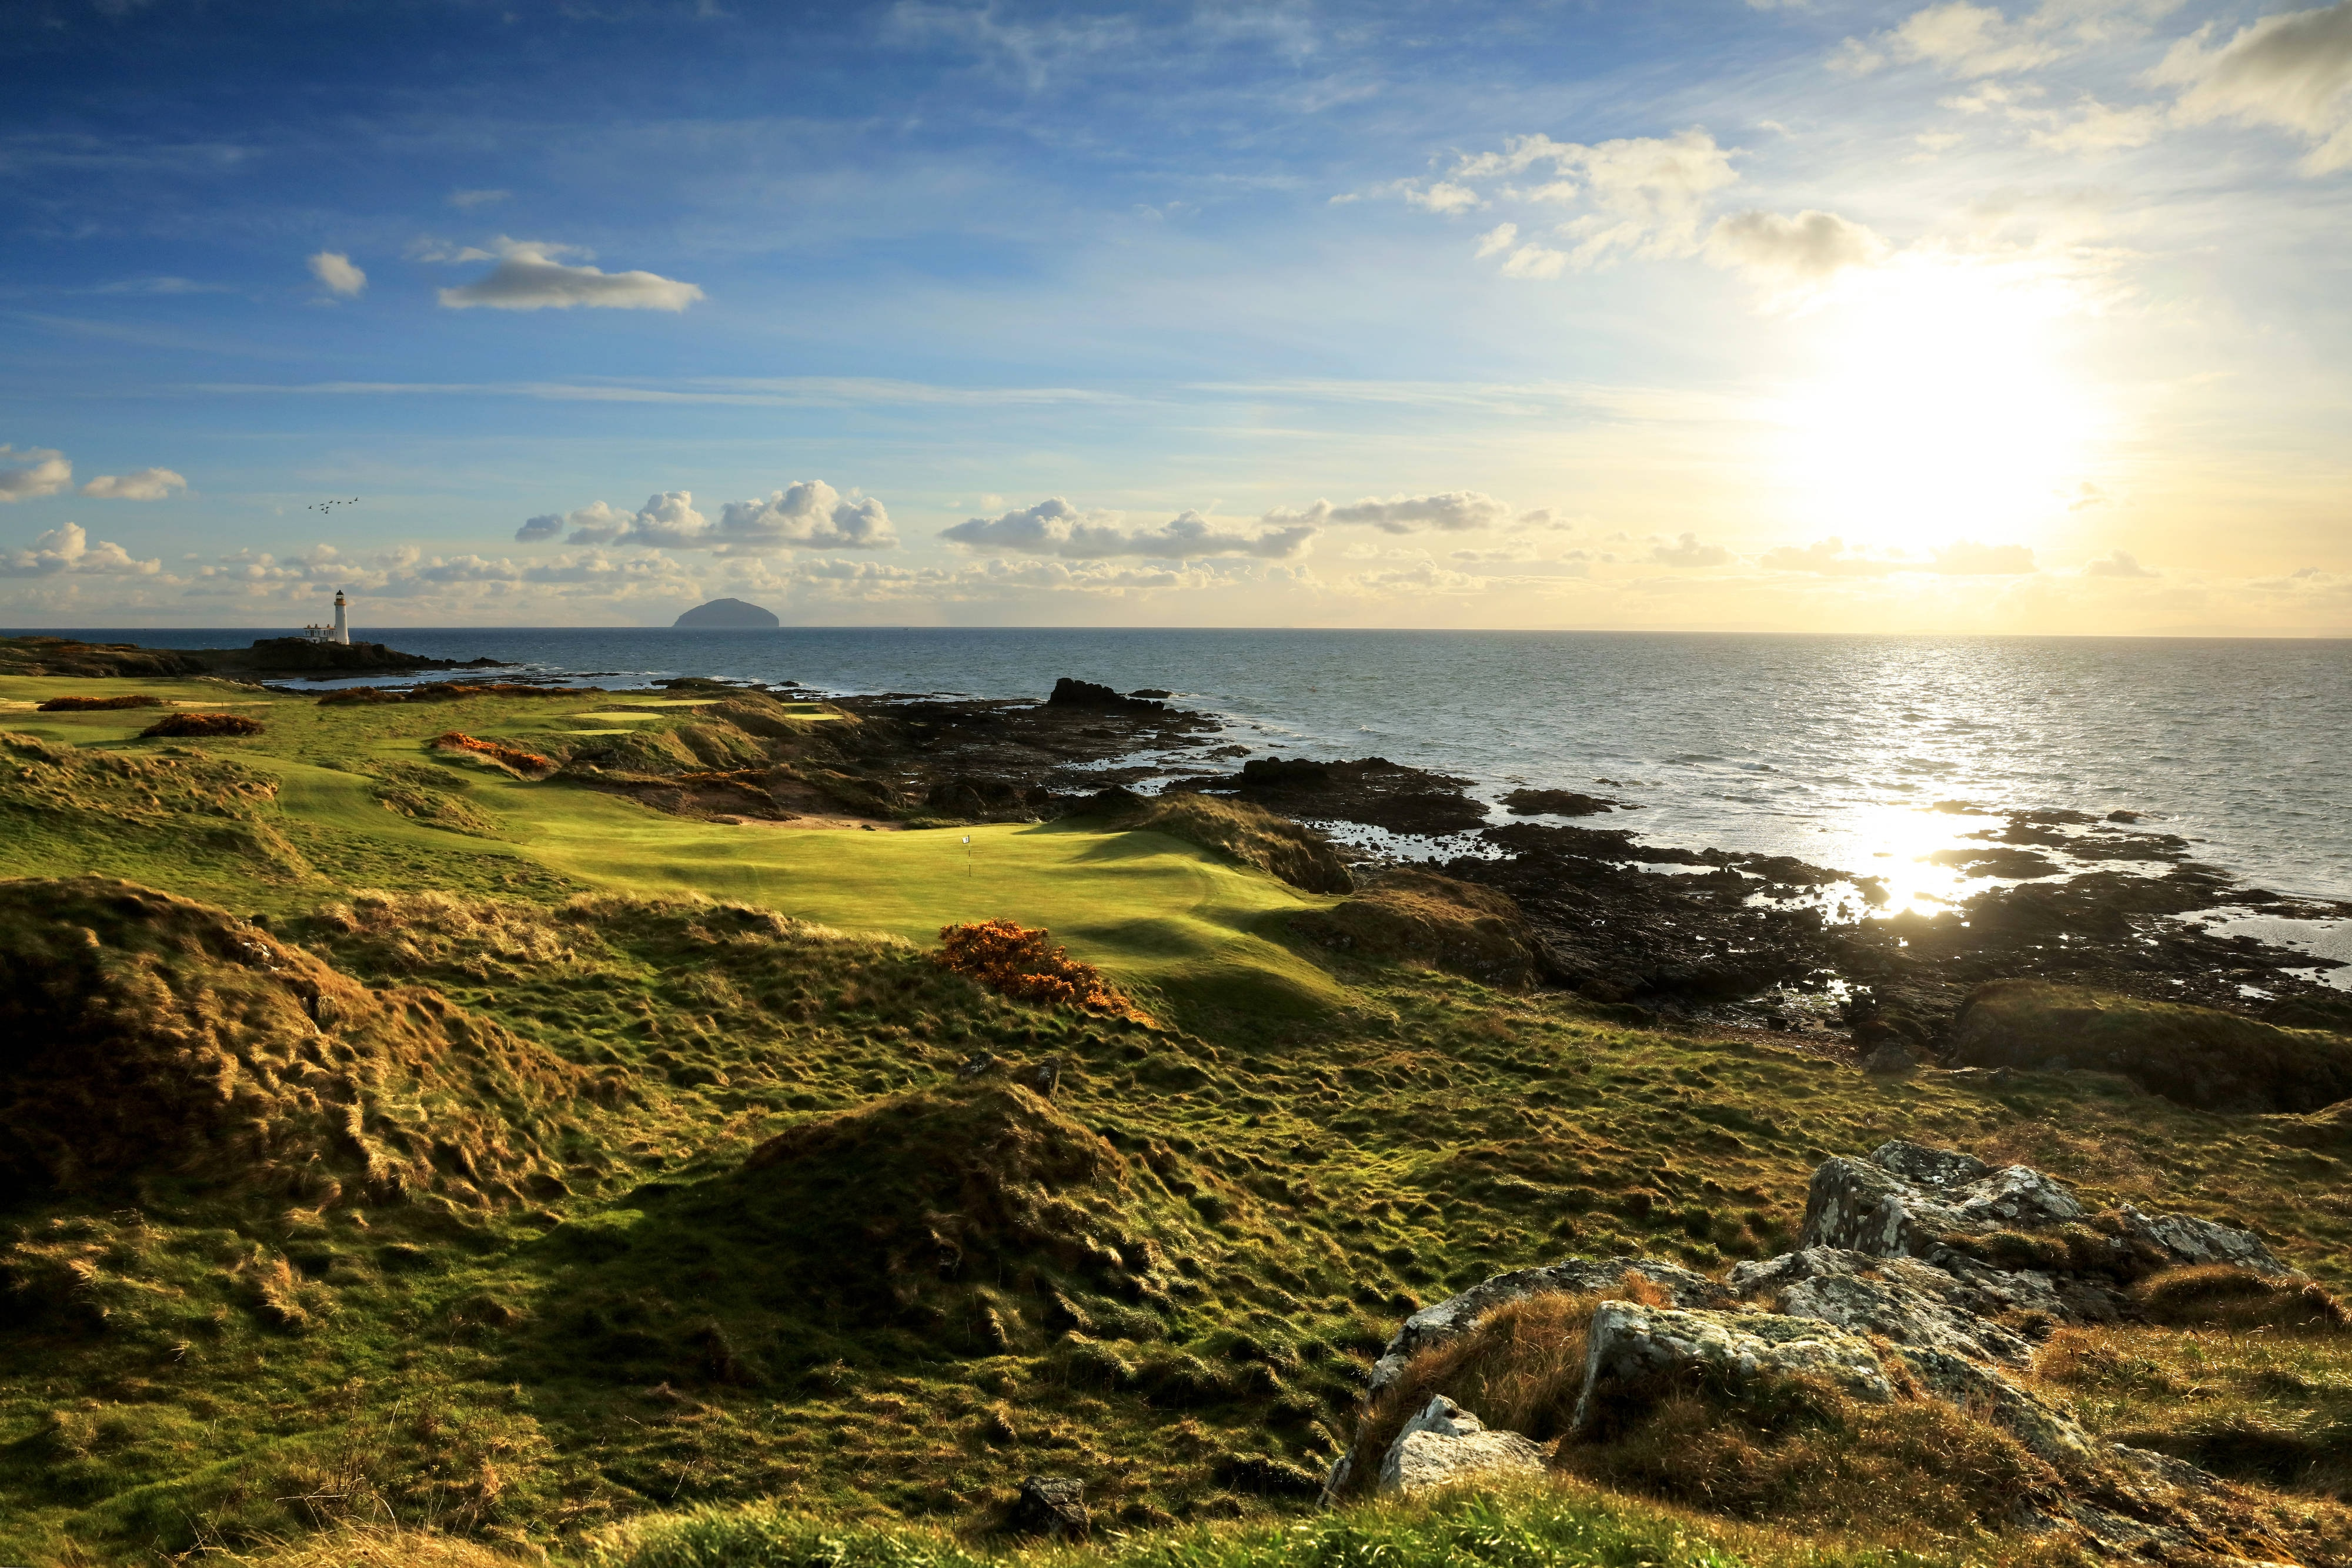 The 11th hole of the Ailsa Course